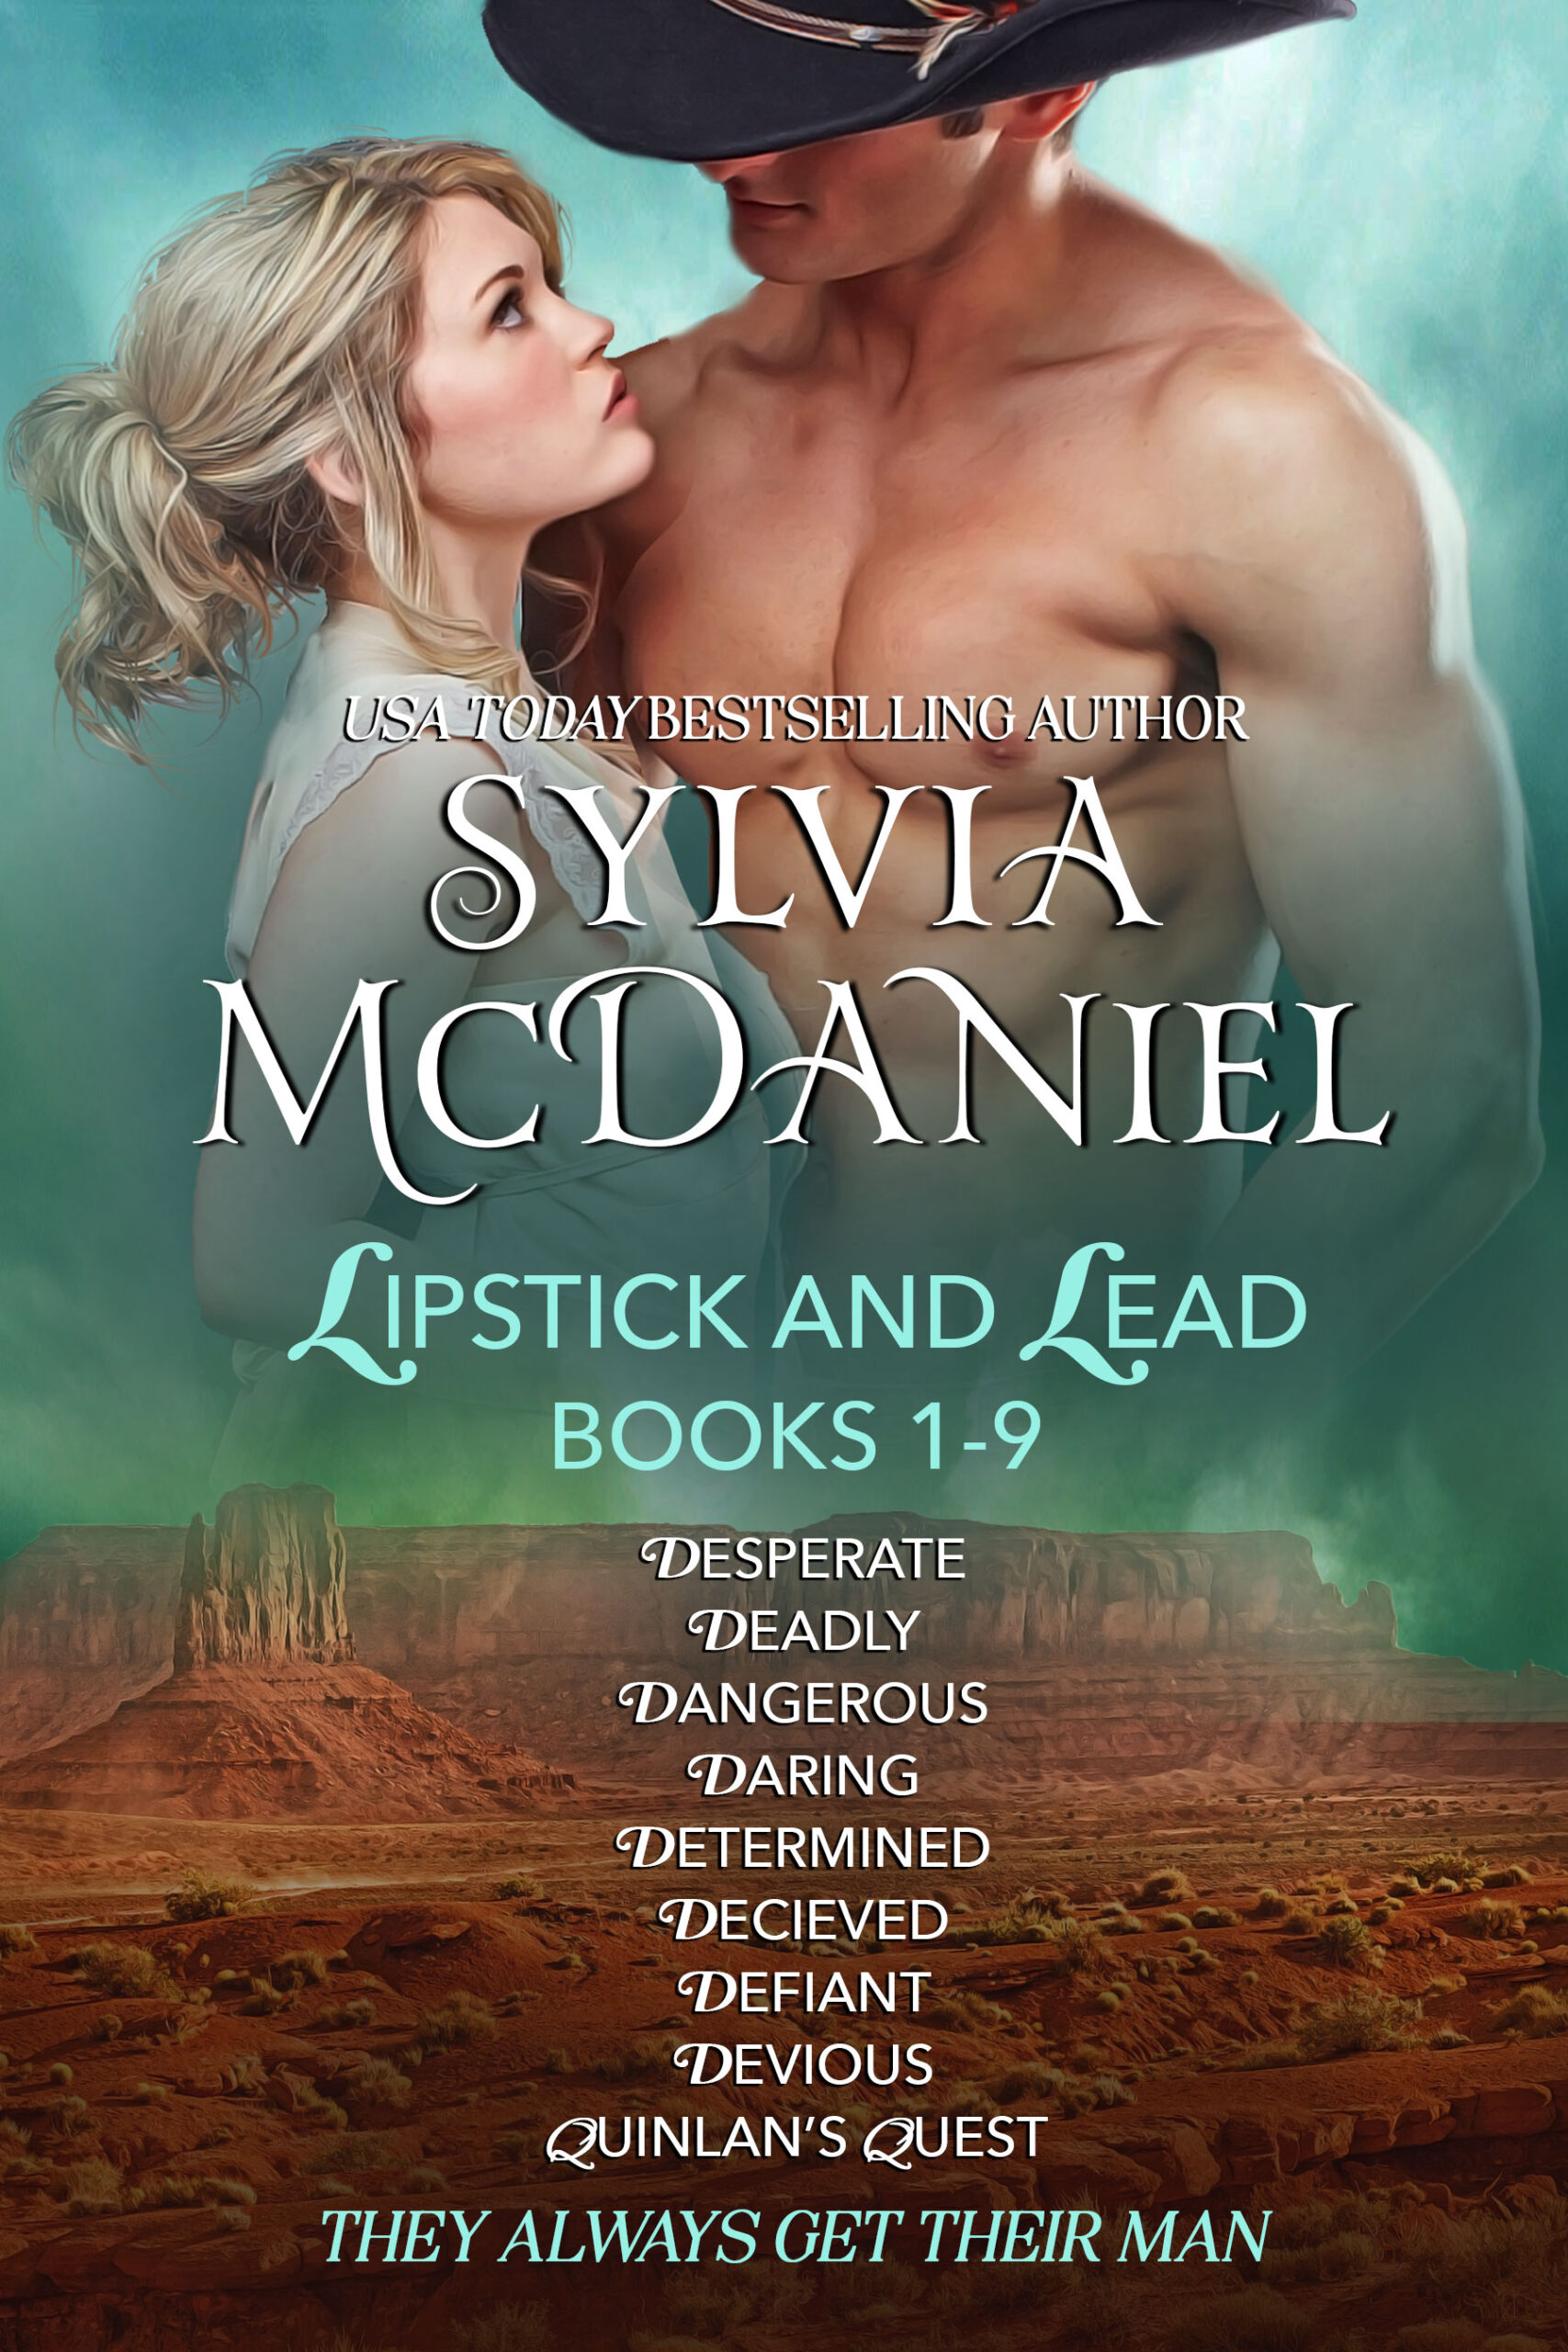 Cover of the Box Set of Lipstick and Lead Series by Sylvia McDaniel. Blonde woman looking up at a cowboy without his shirt.